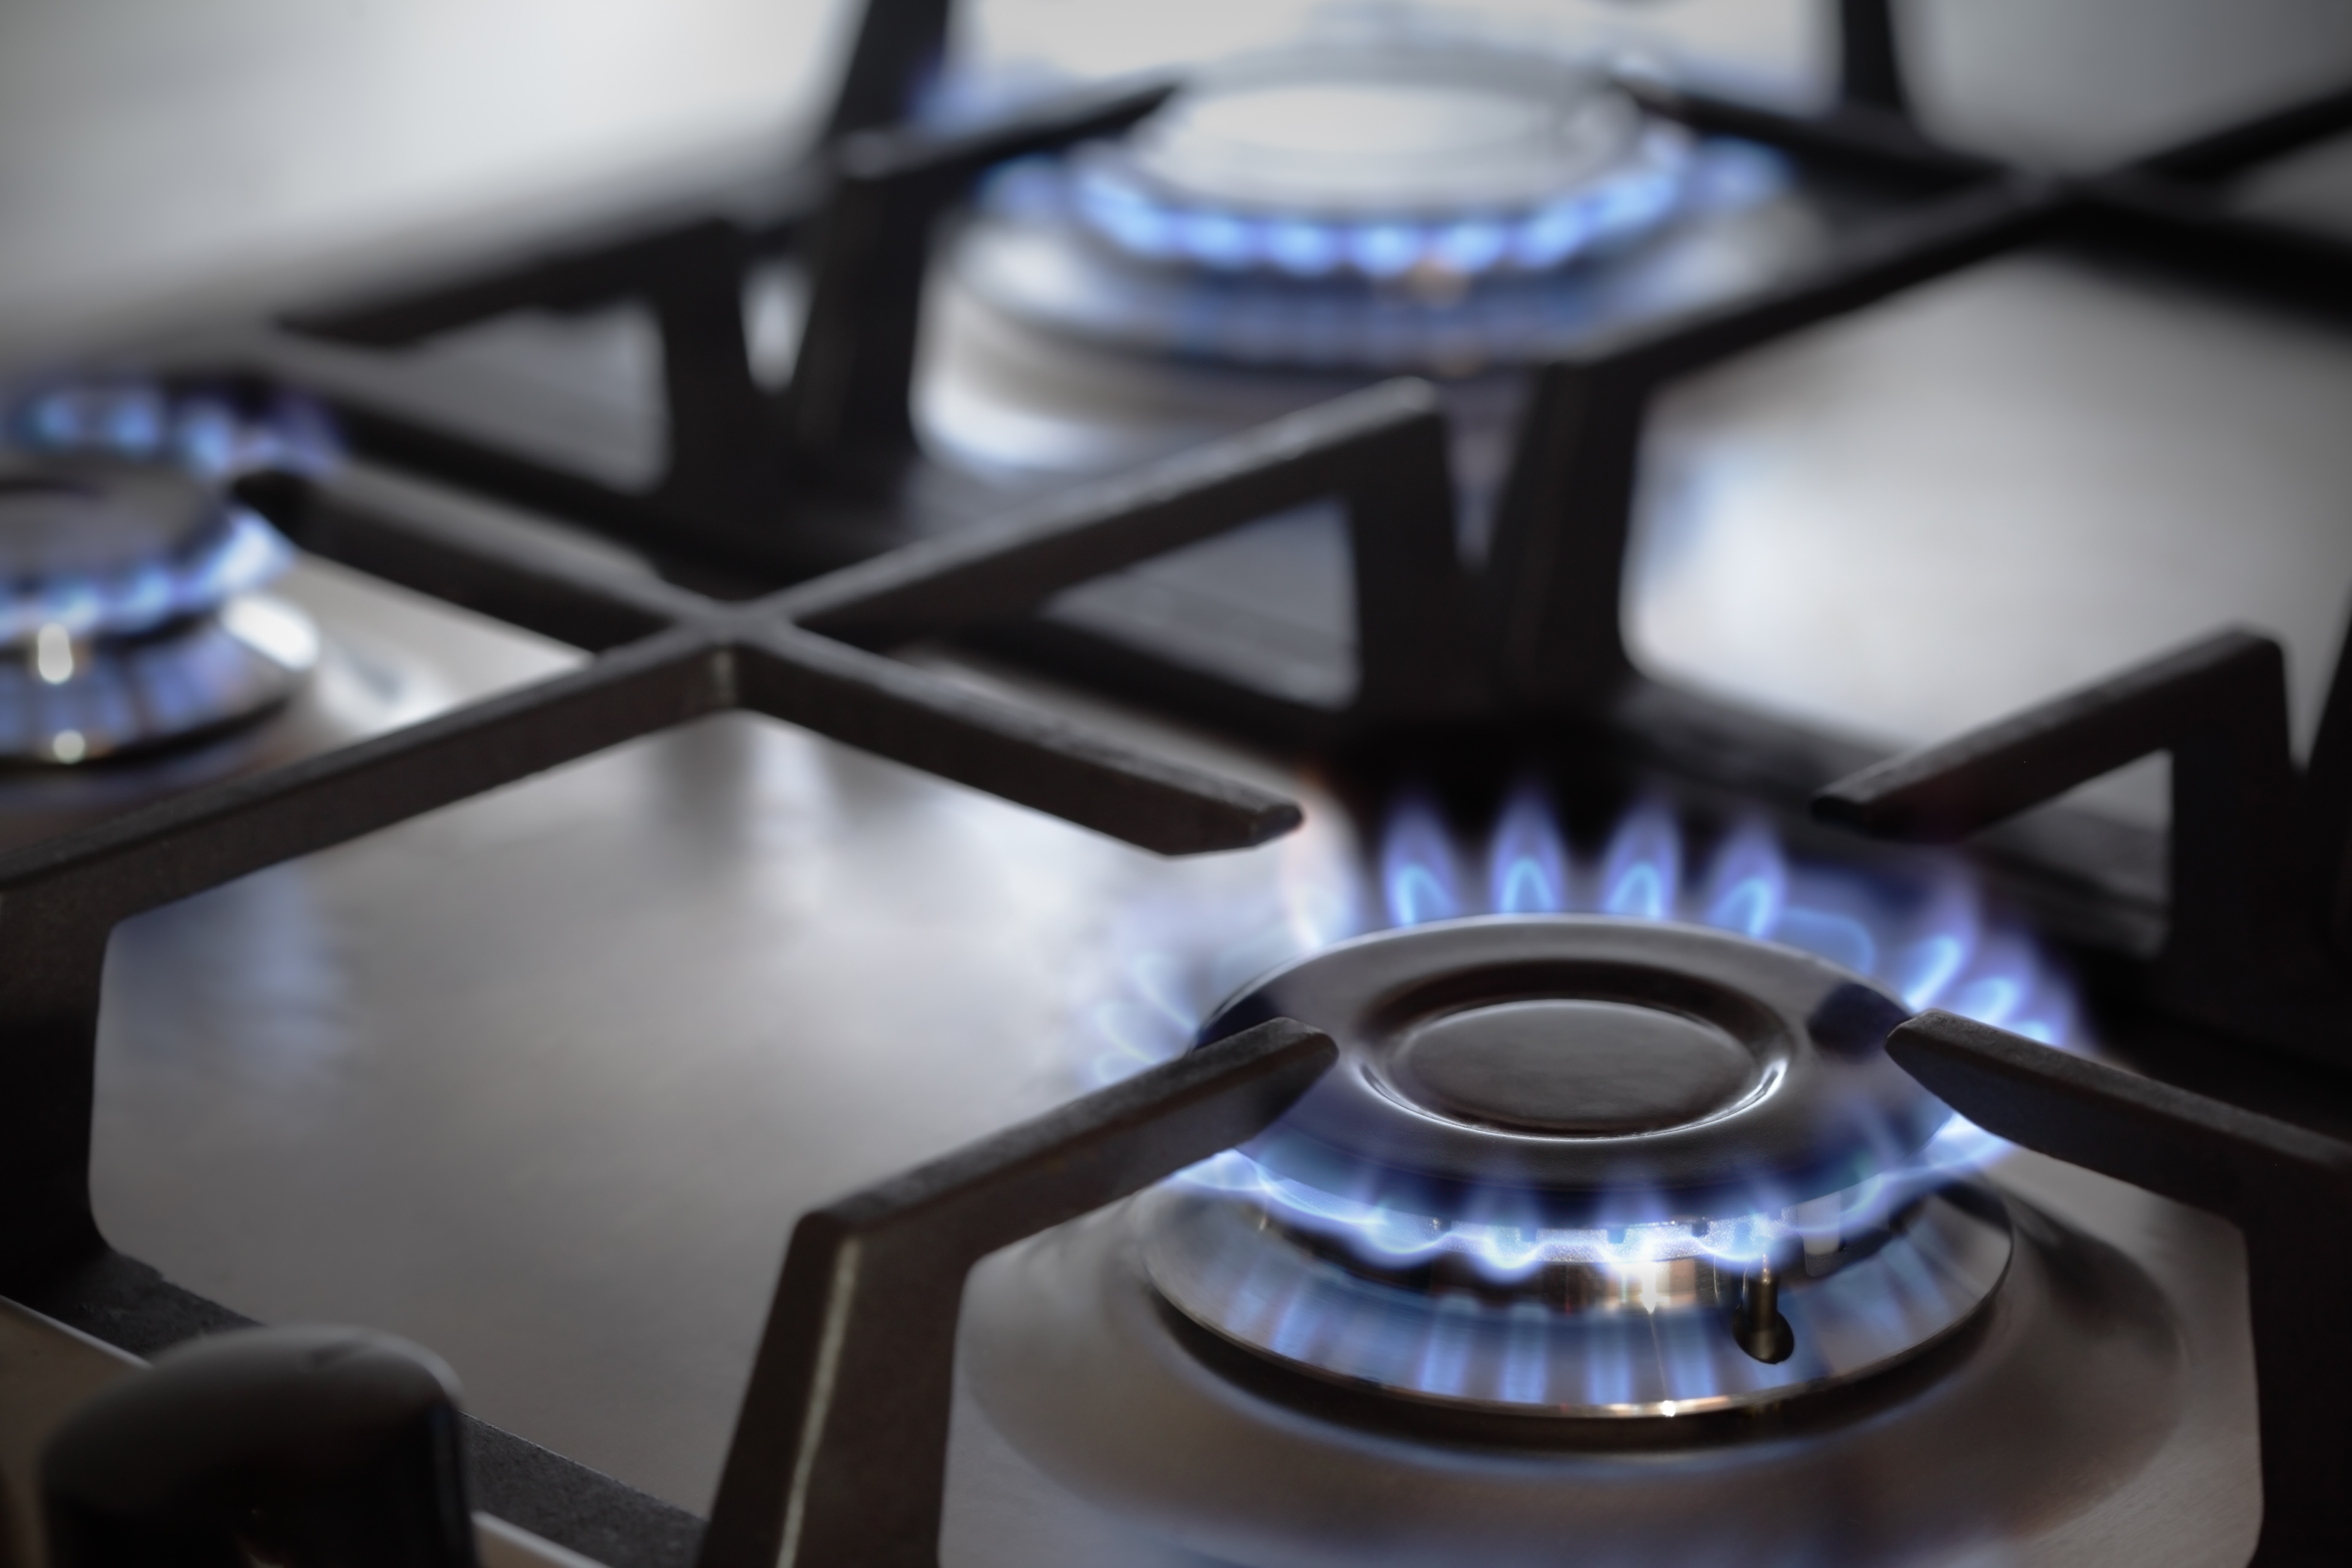 National Grid issues gas warning, asks market to pull out stops